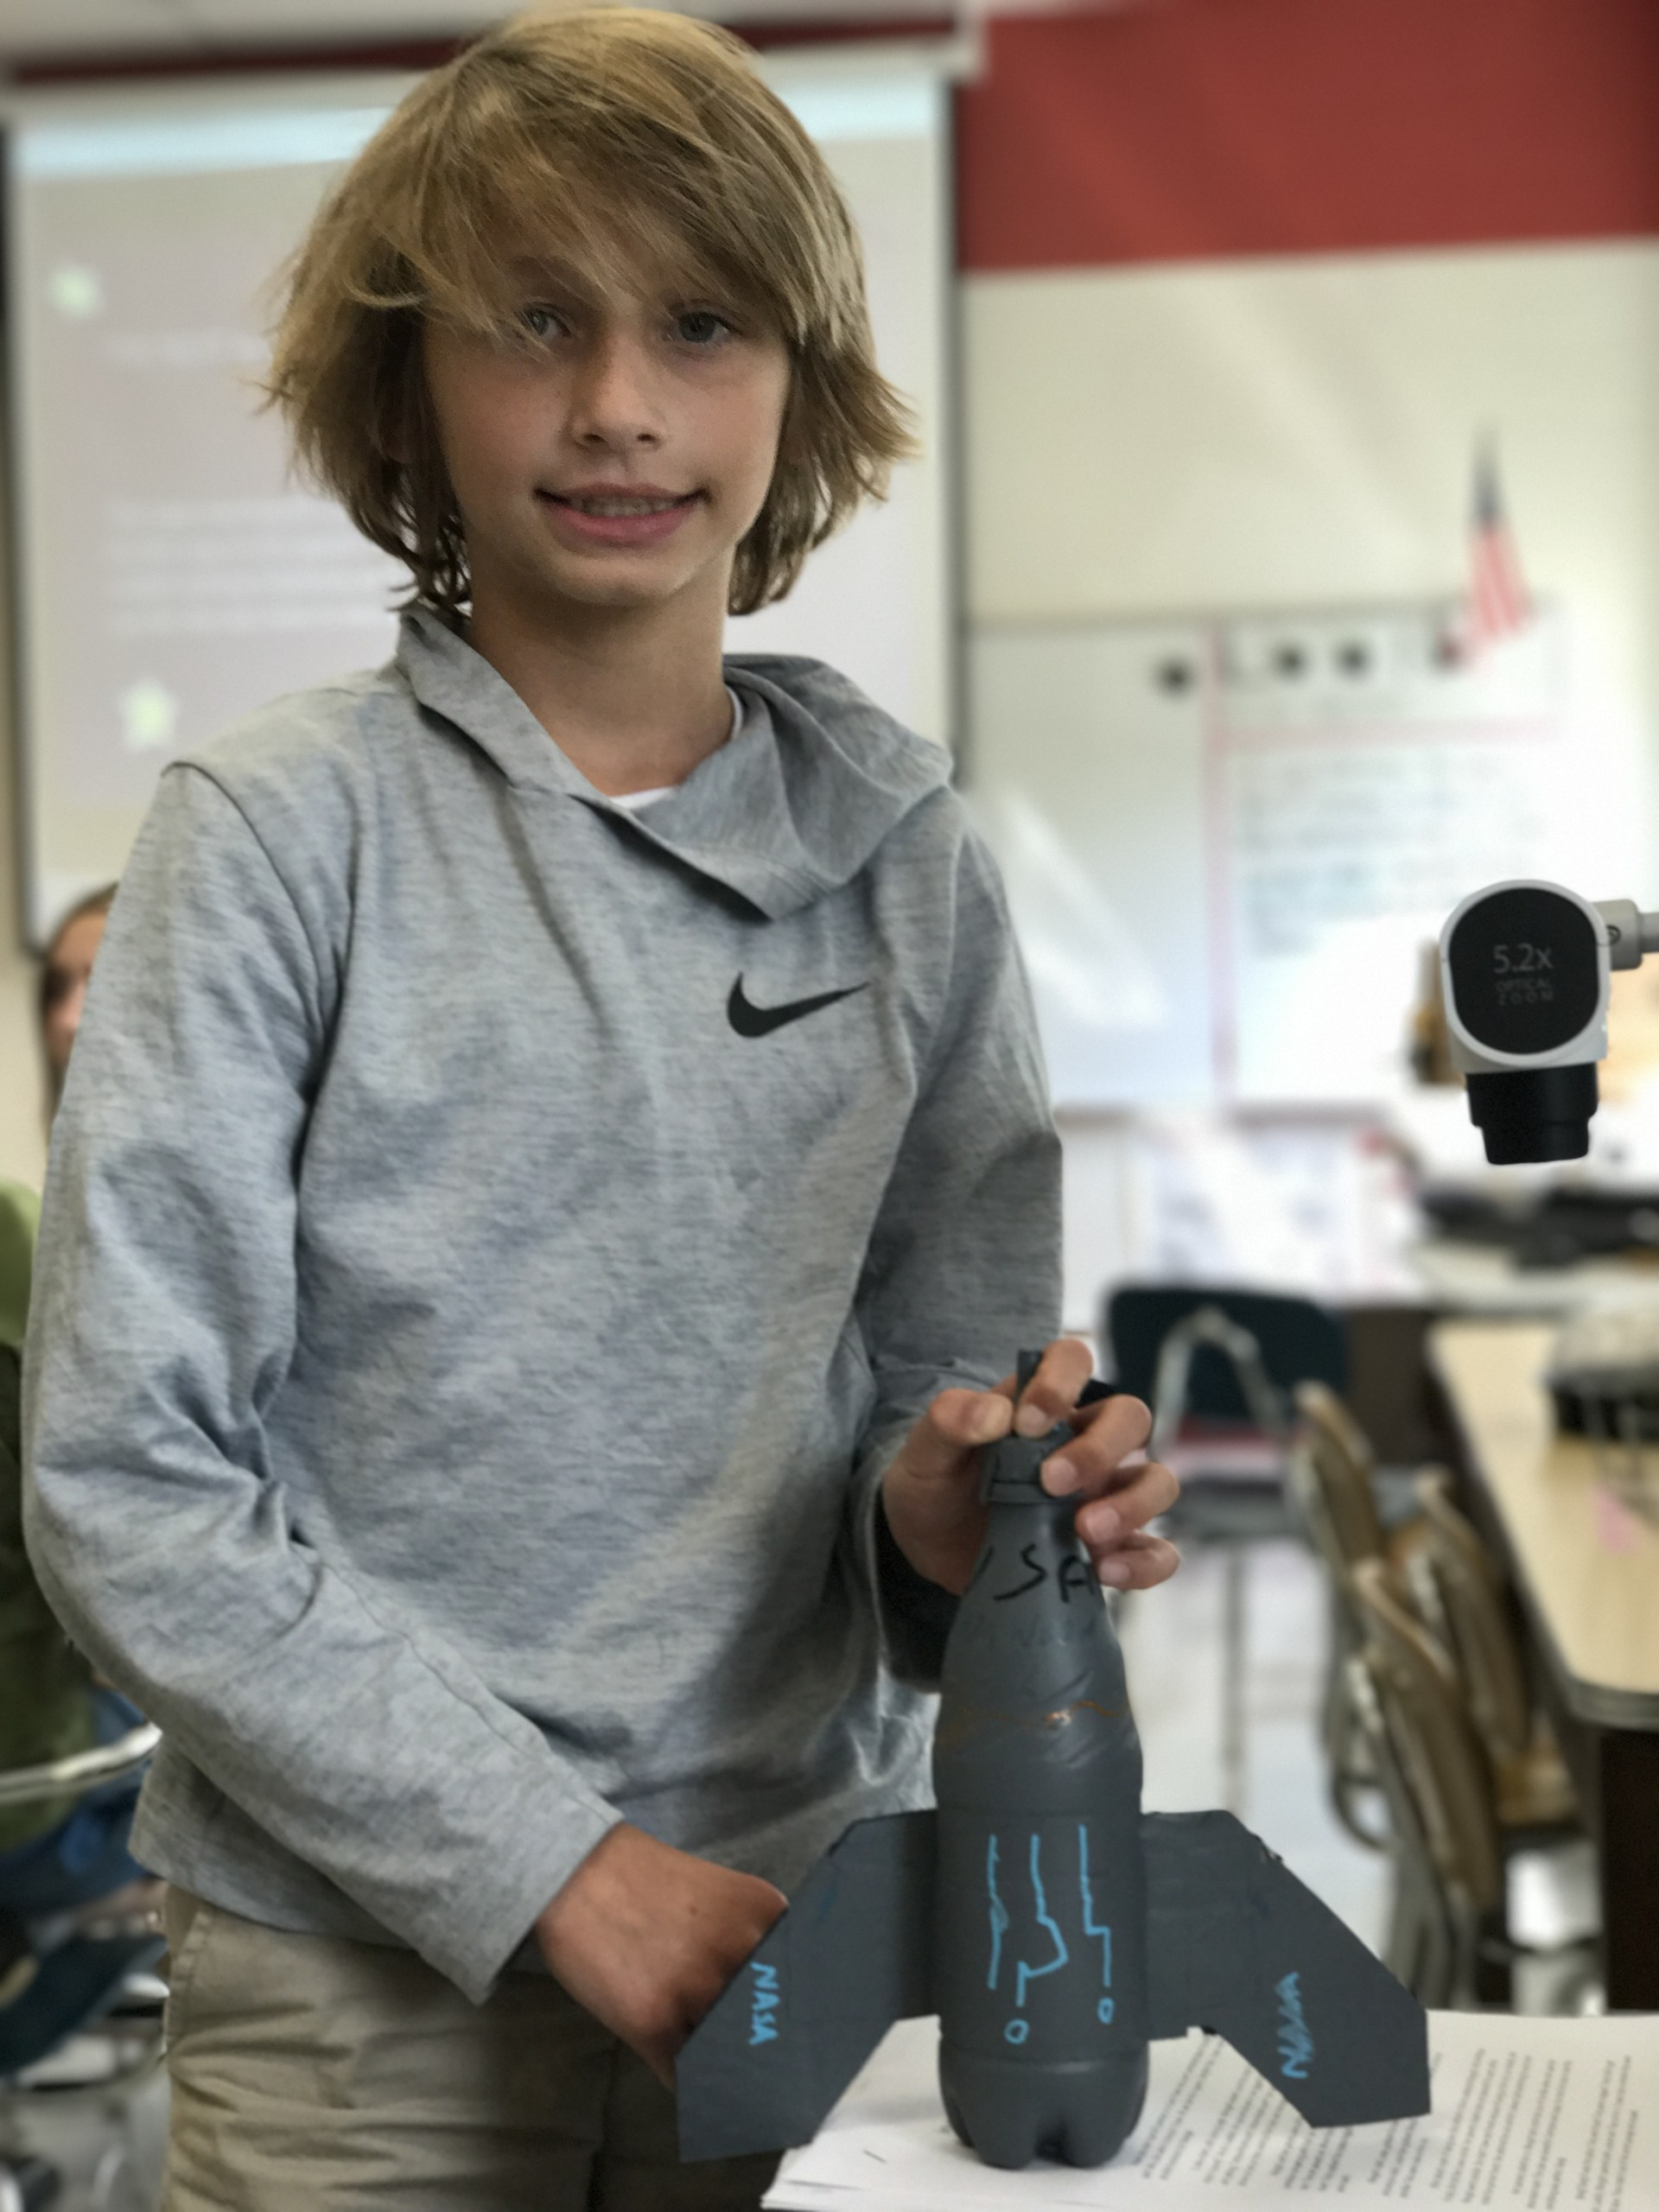 Carson created a rocket that took Margot into space